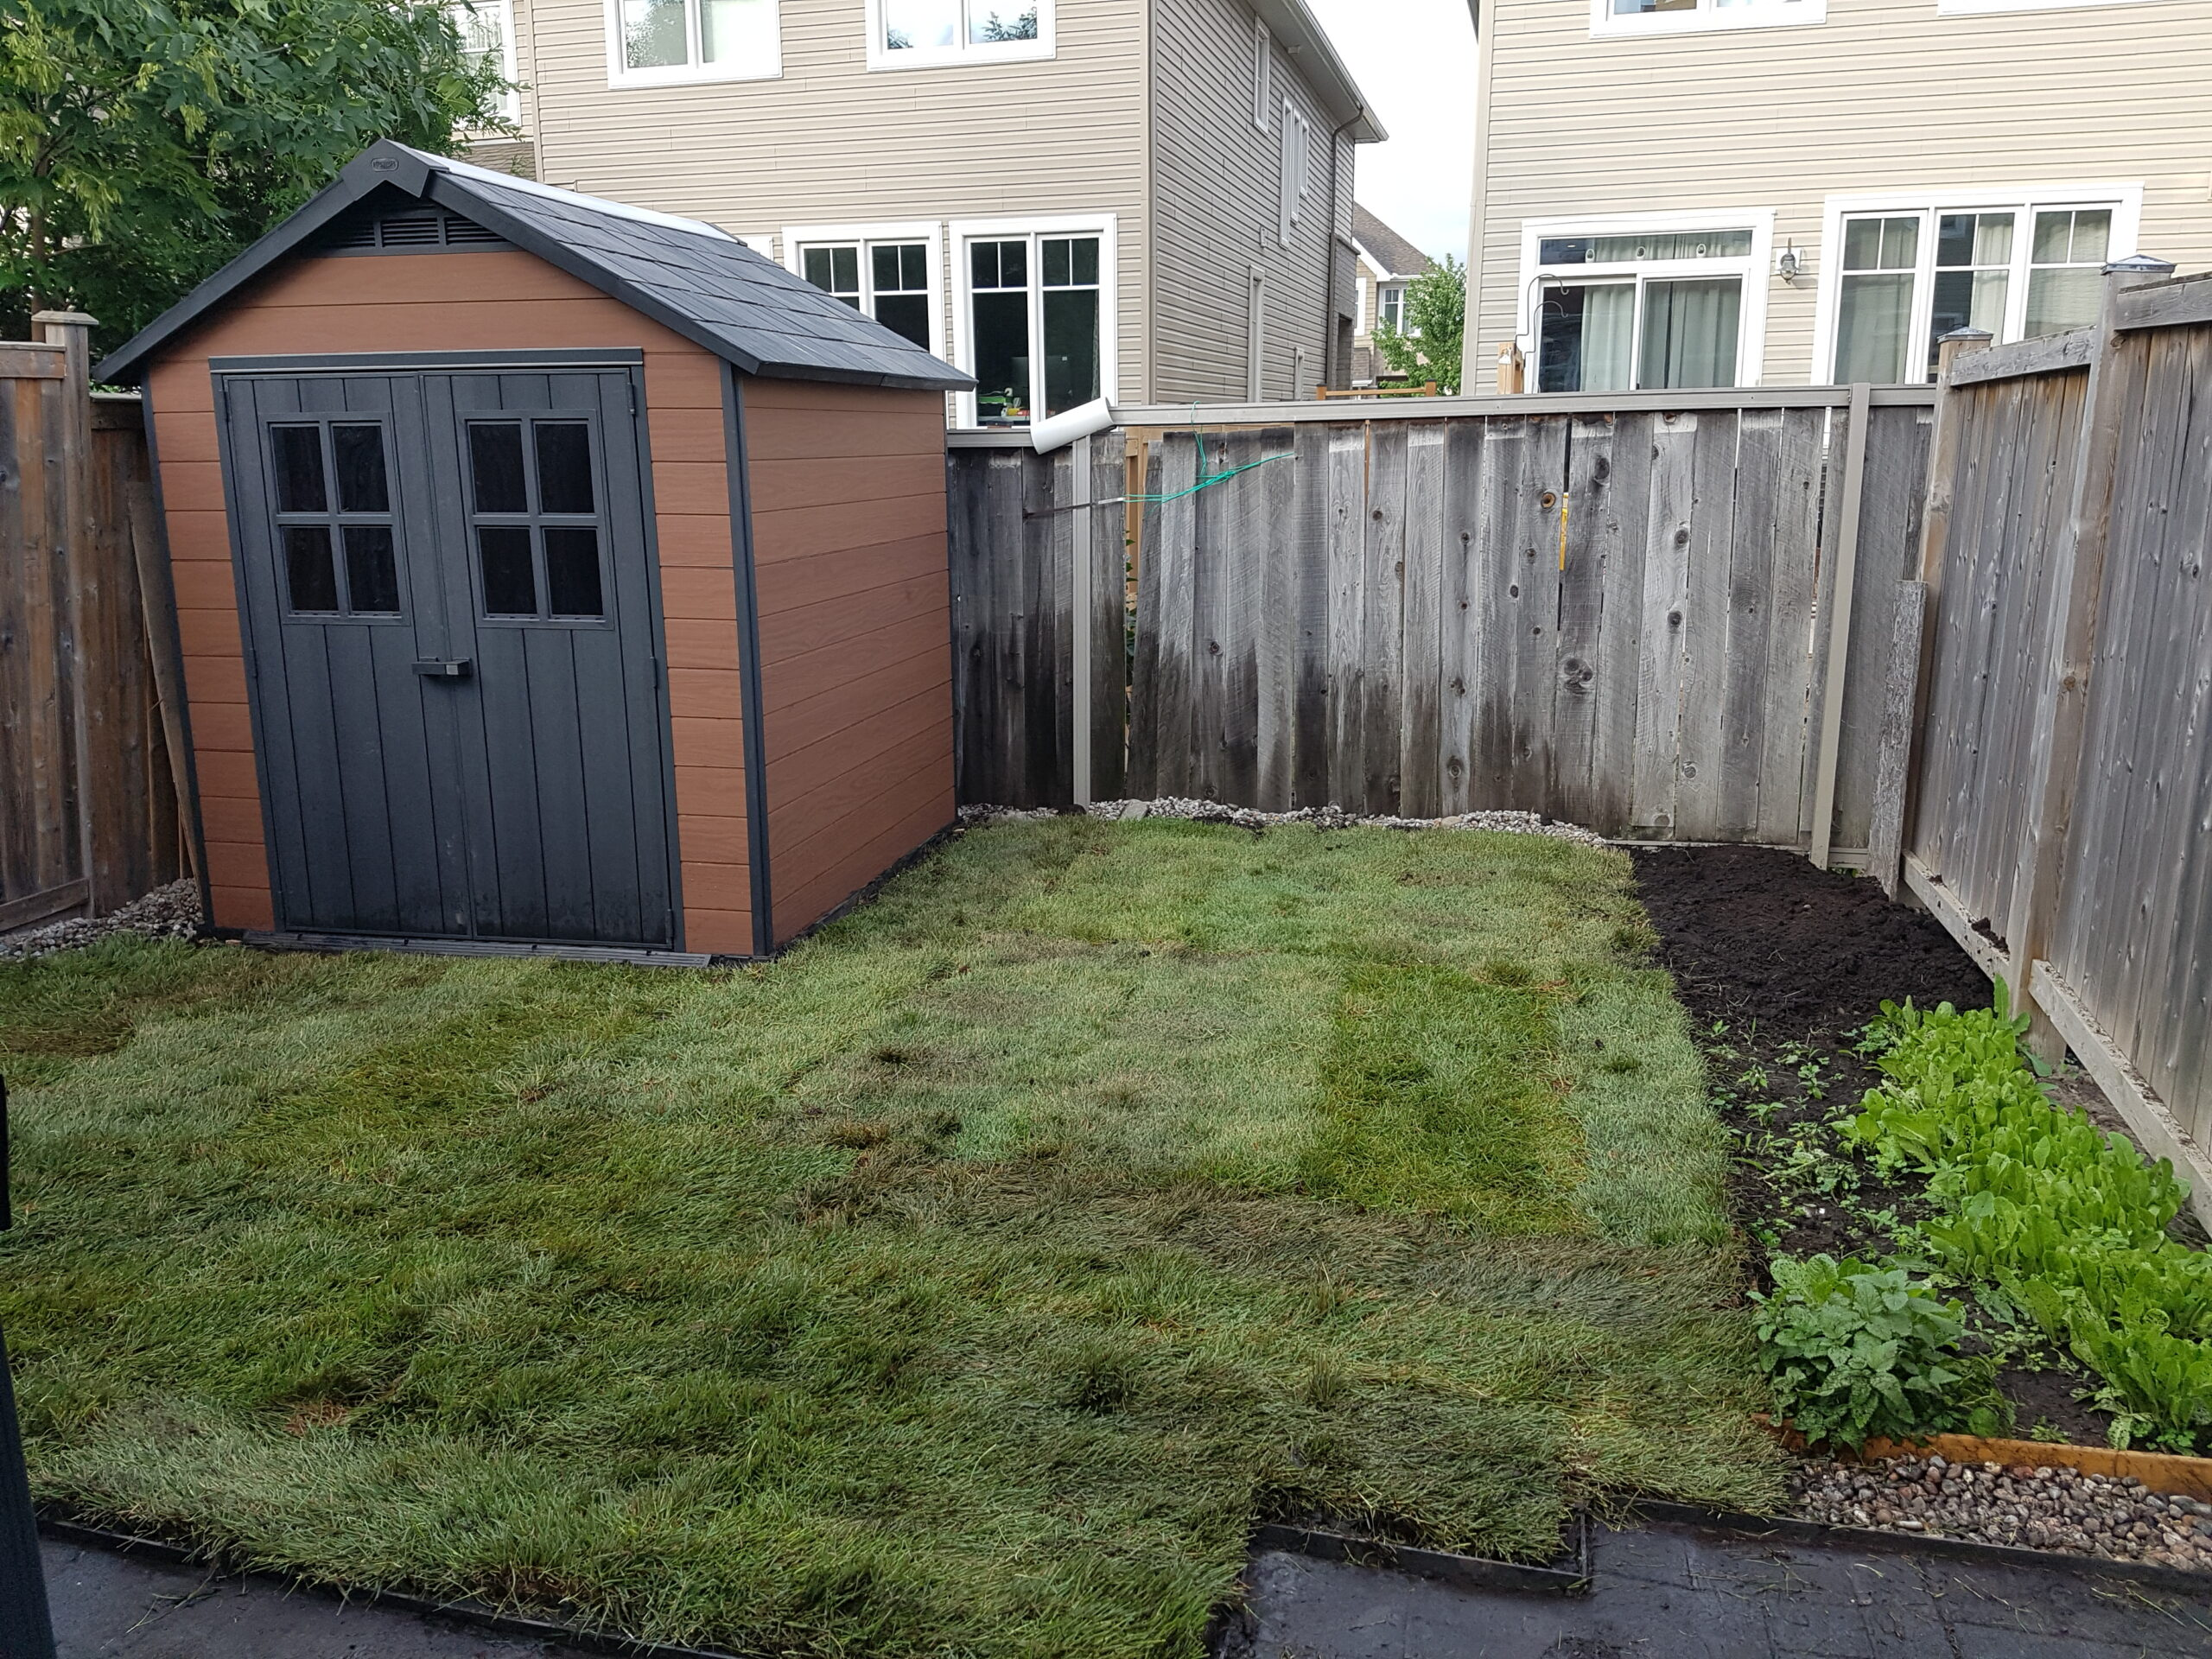 Keter Shed and Sod